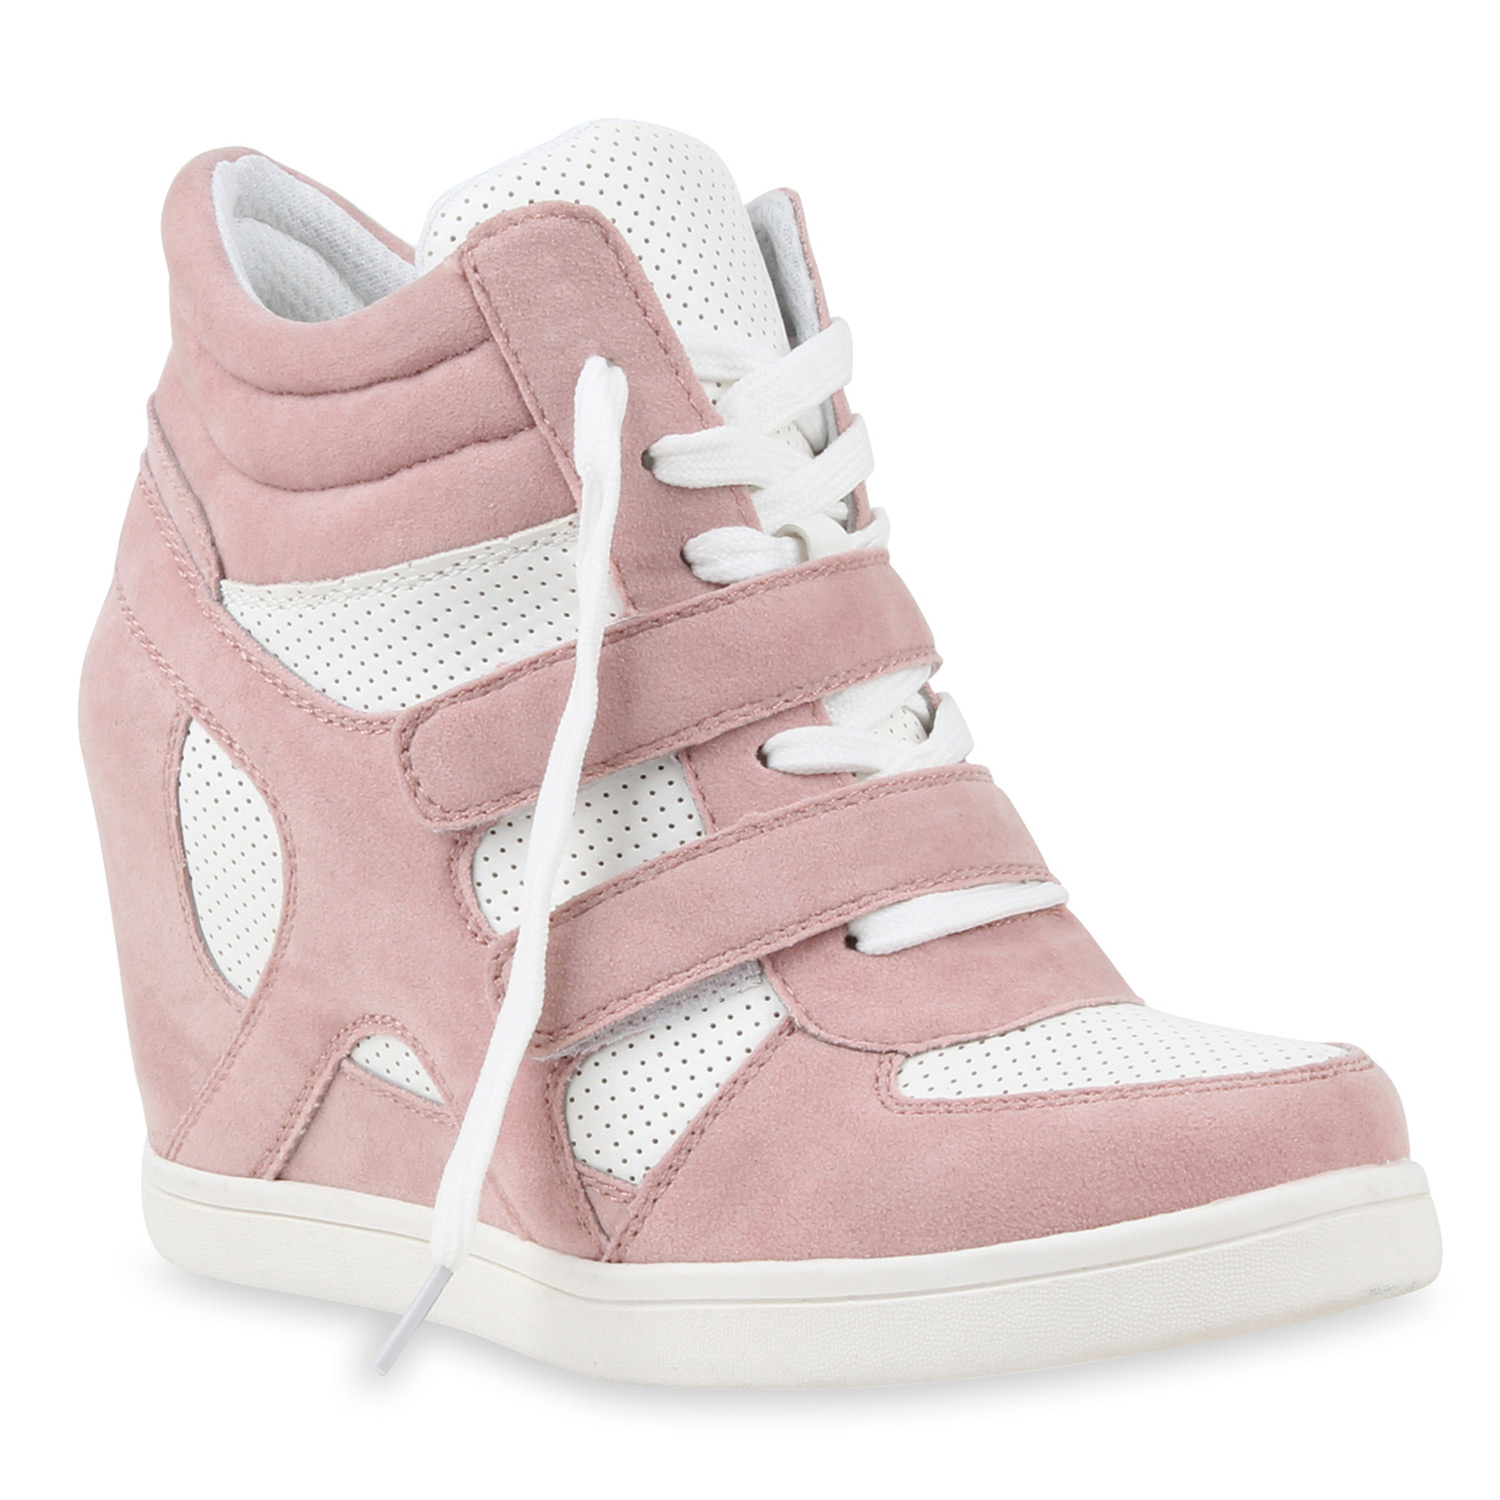 Find great deals on eBay for damen sneaker. Shop with confidence.